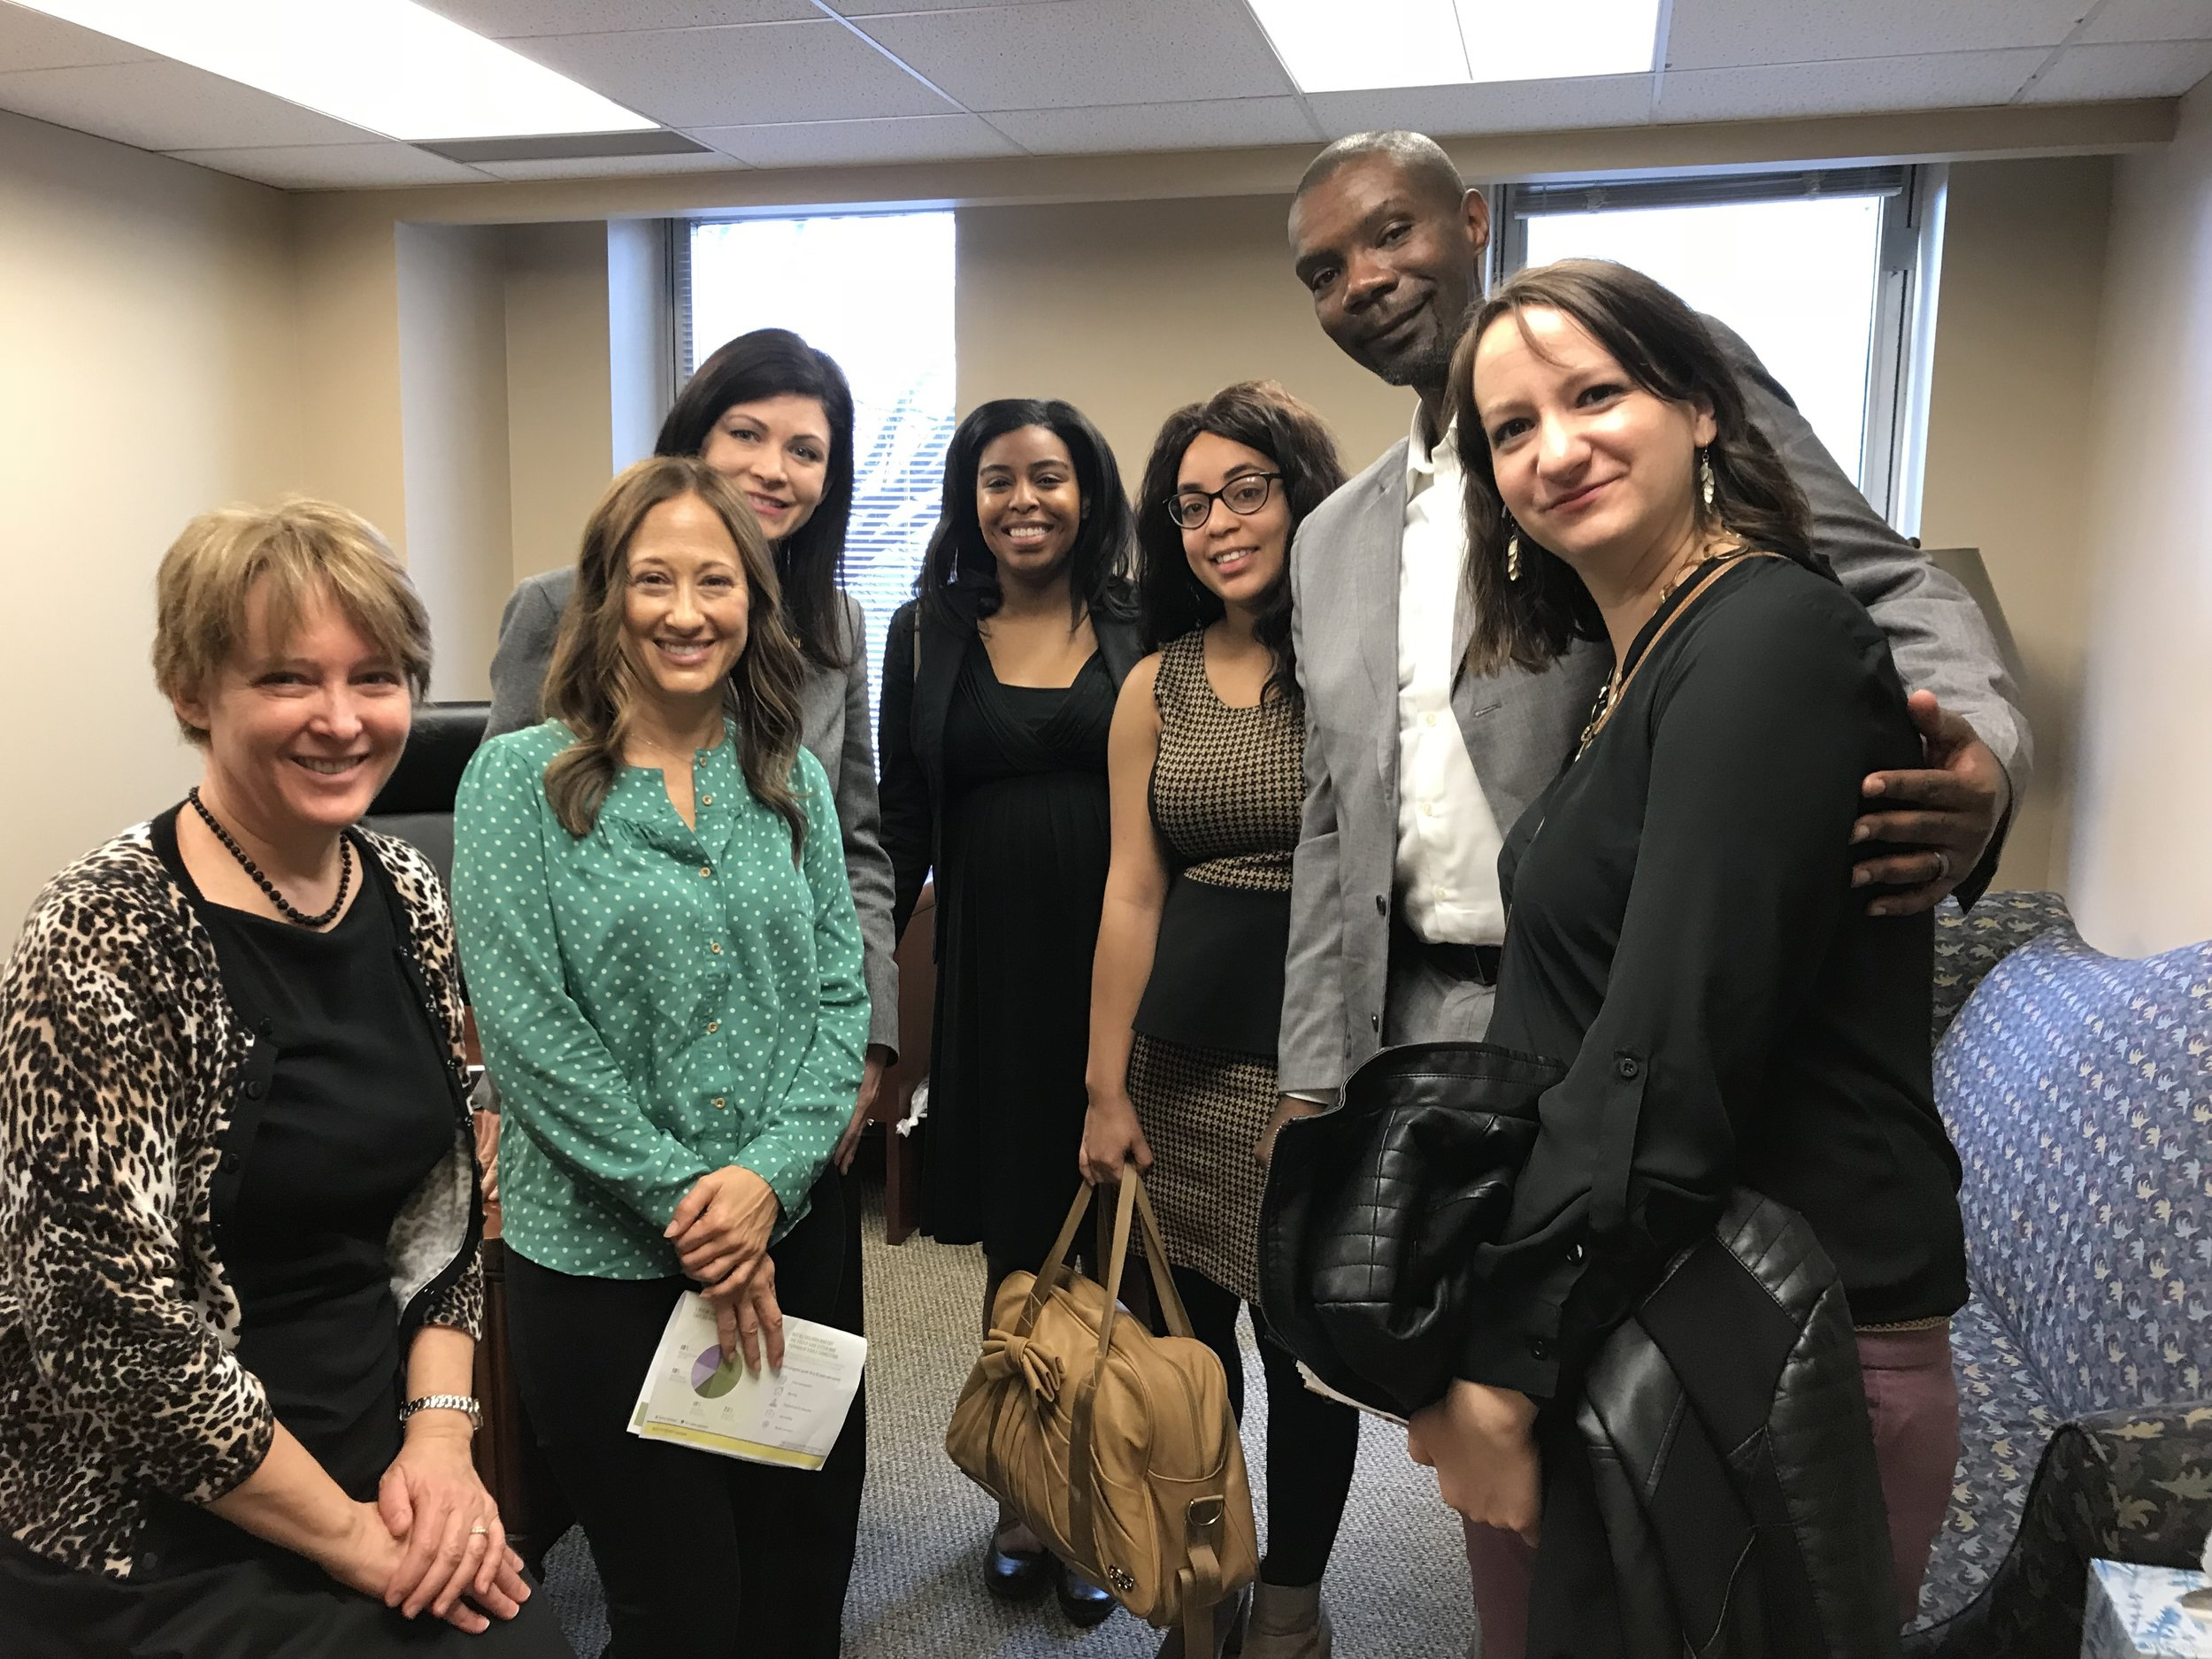 Advocates from Voices for Virginia's Children, Connecting Hearts, Greater Richmond SCAN, foster care alumni and CASA of Central Virginia are pictured with Delegate Delaney, one of the patrons for the House bill proposing a KinGAP program.